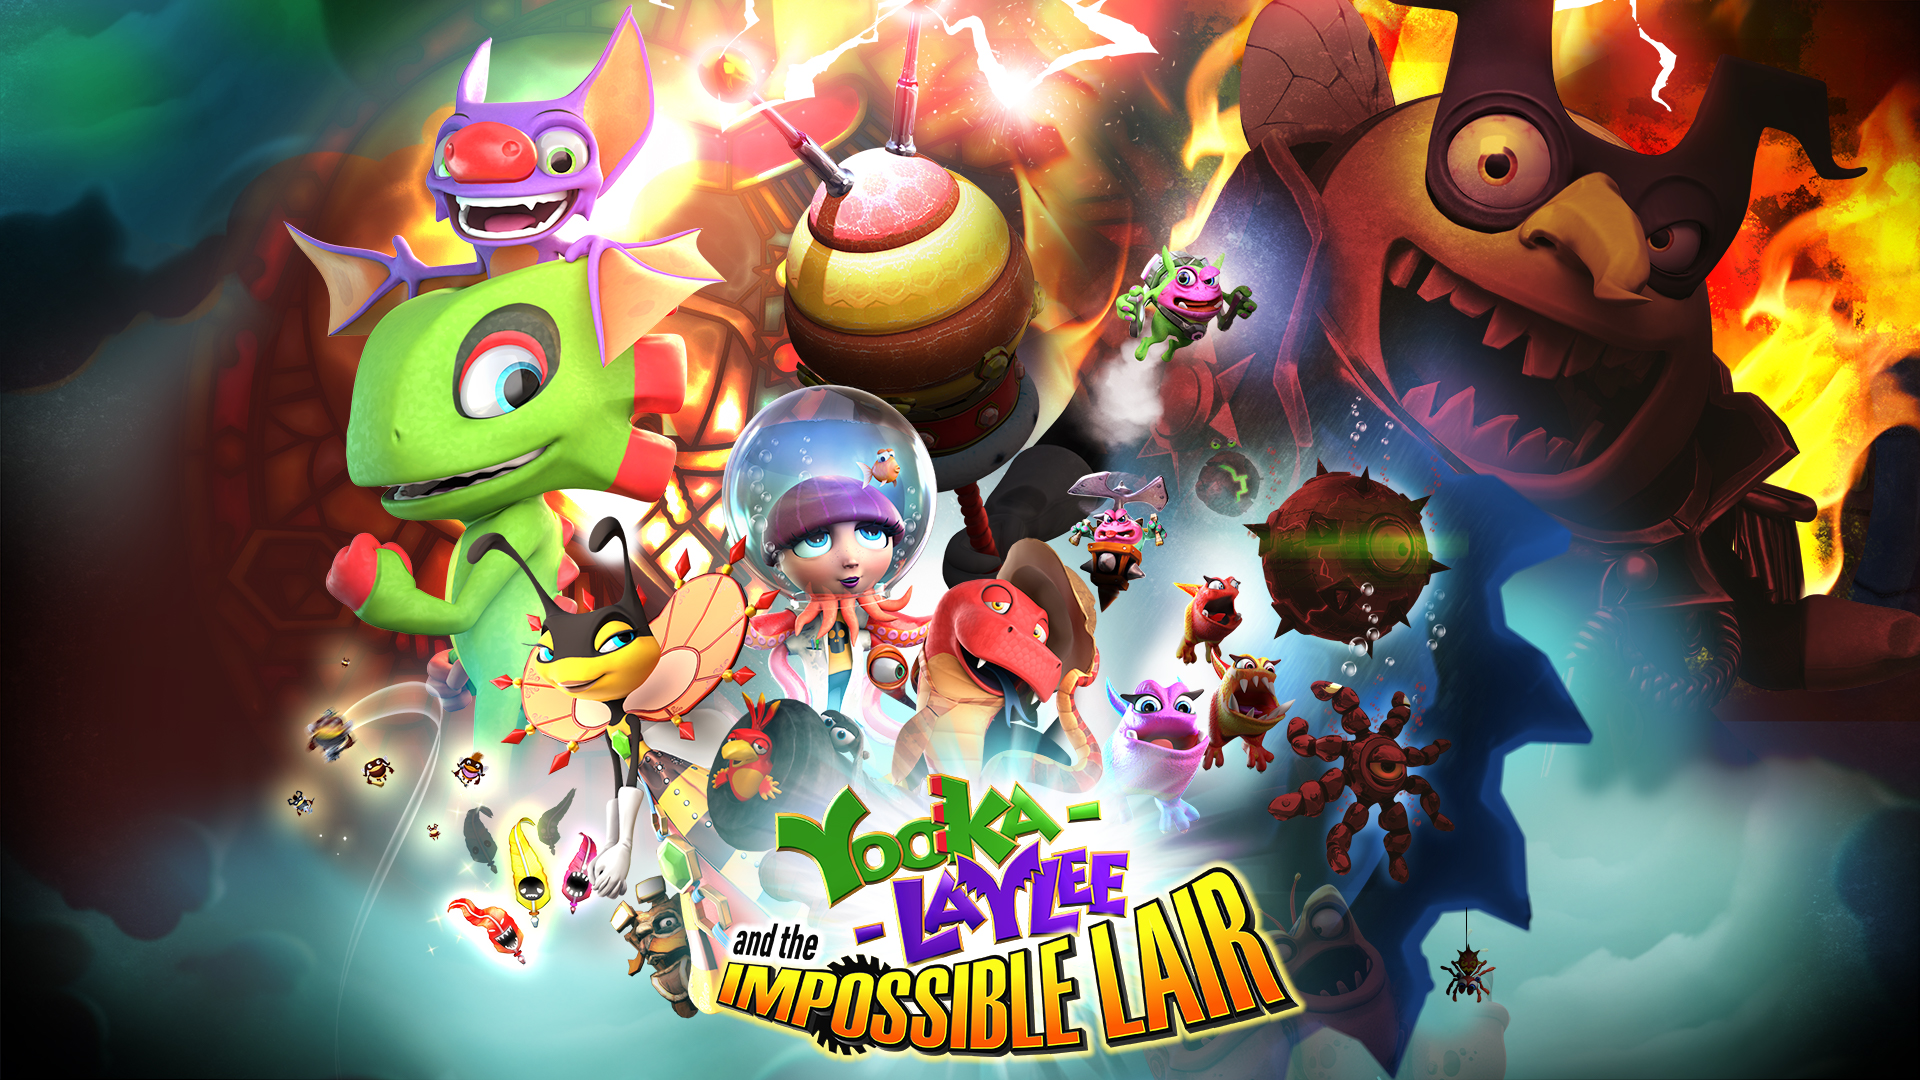 Yooka-Laylee and the Impossible Lair Update Out Today & Original Yooka-Laylee Update Soon!